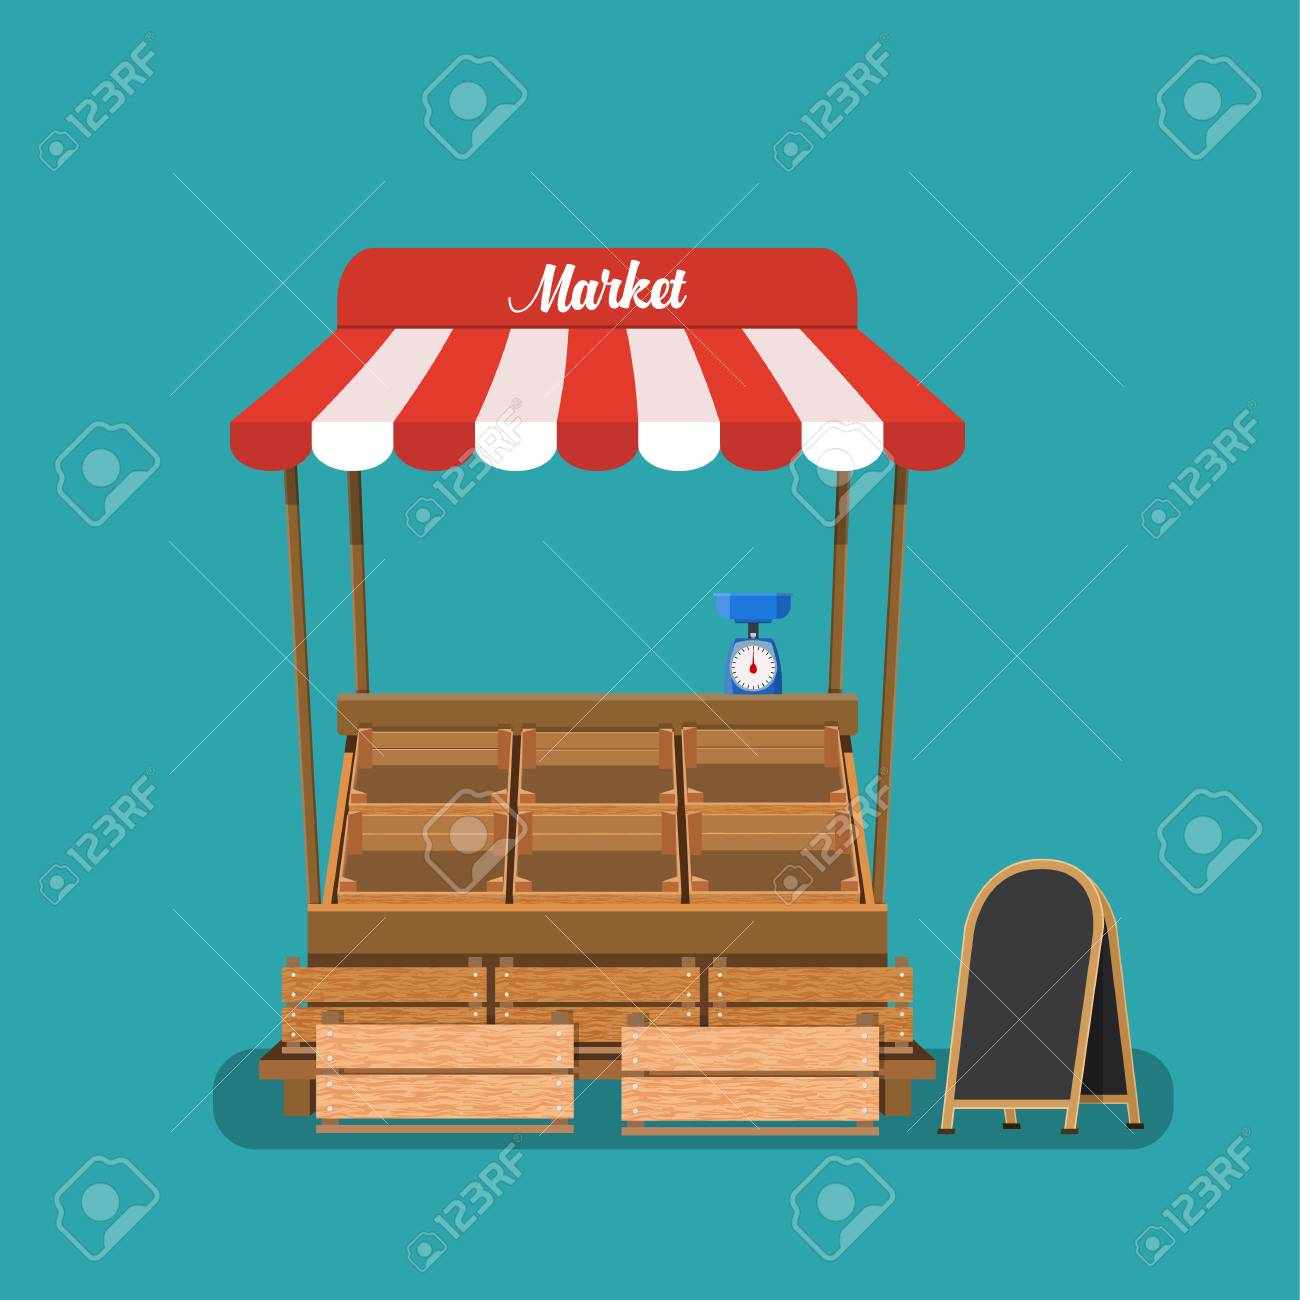 80 concession stand cliparts stock vector and royalty free rh 123rf com Hot Dog Stand Clip Art concession stand clipart free